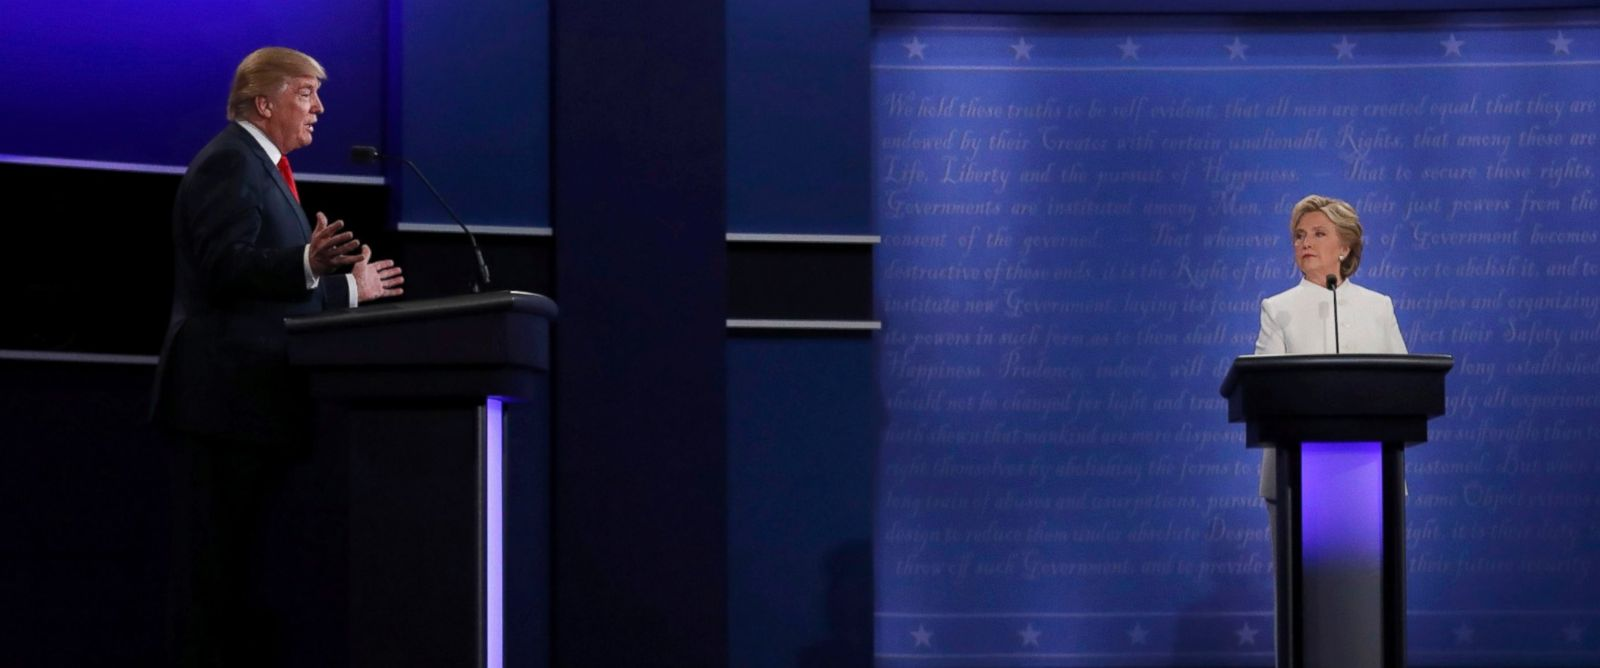 It's Days After: We are asking who won the Third Debate?